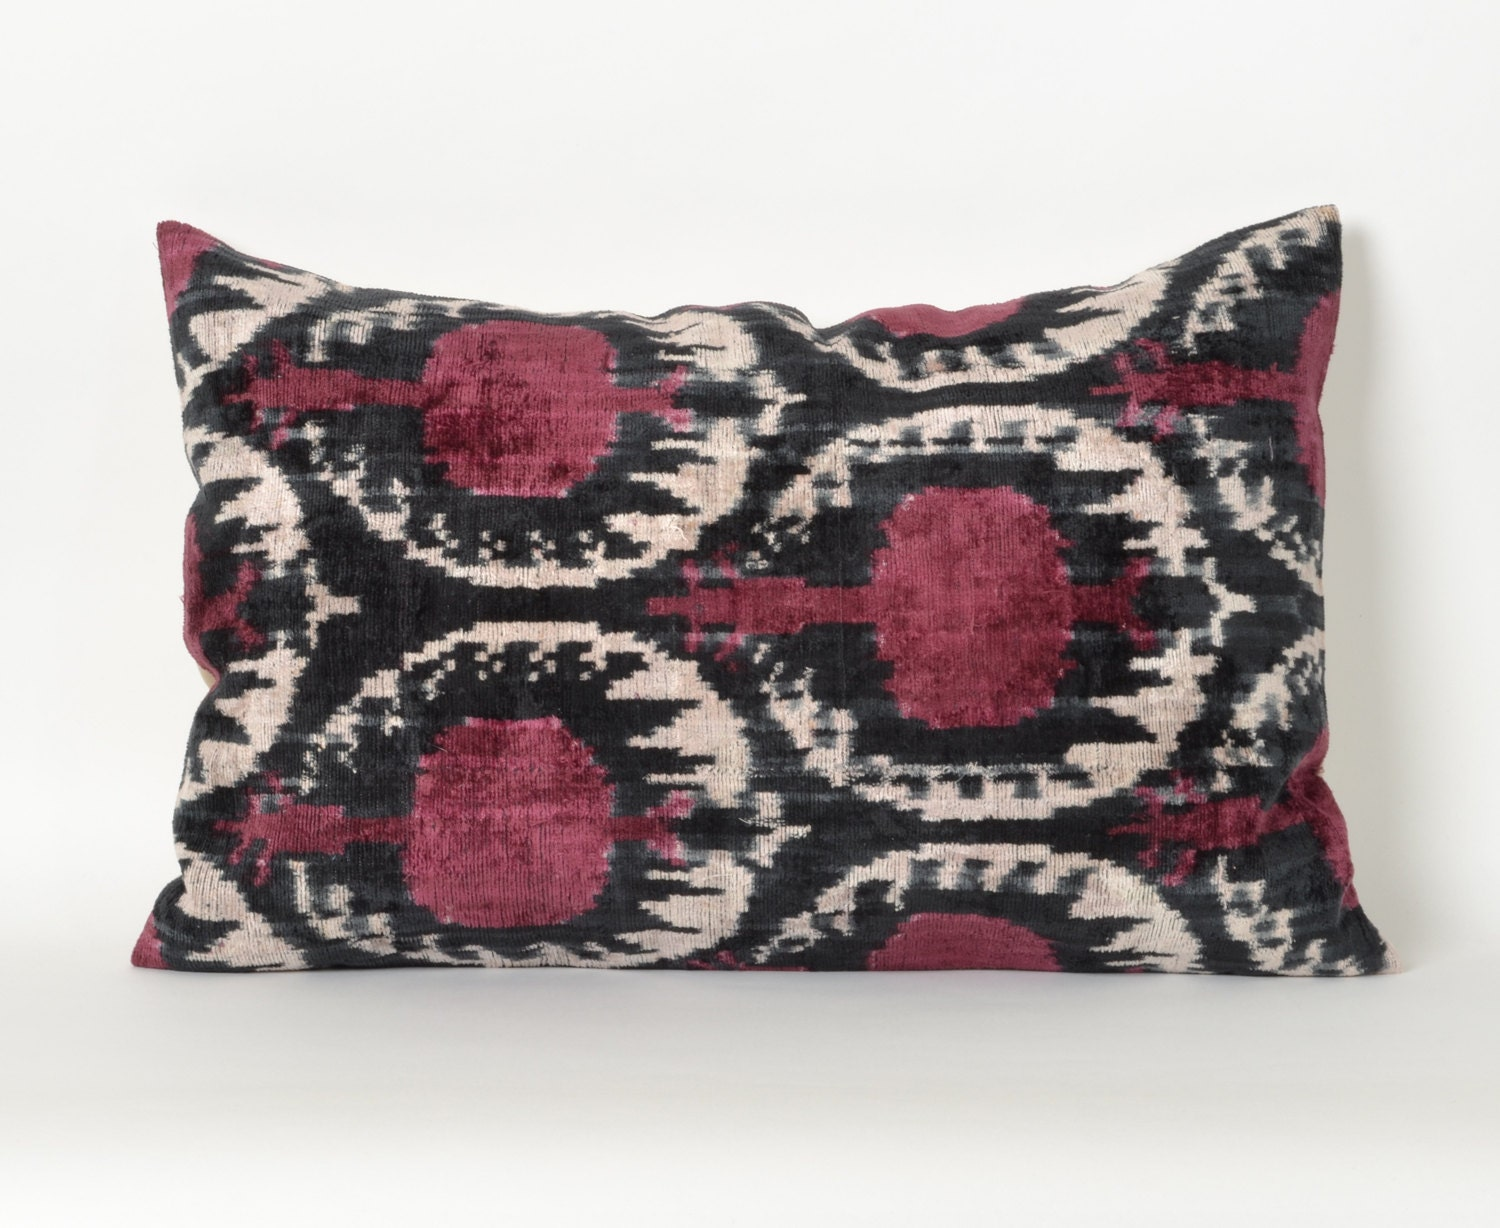 Throw Pillows Velvet : throw pillow velvet pillow ikat pillow ikat decorative by pillowme